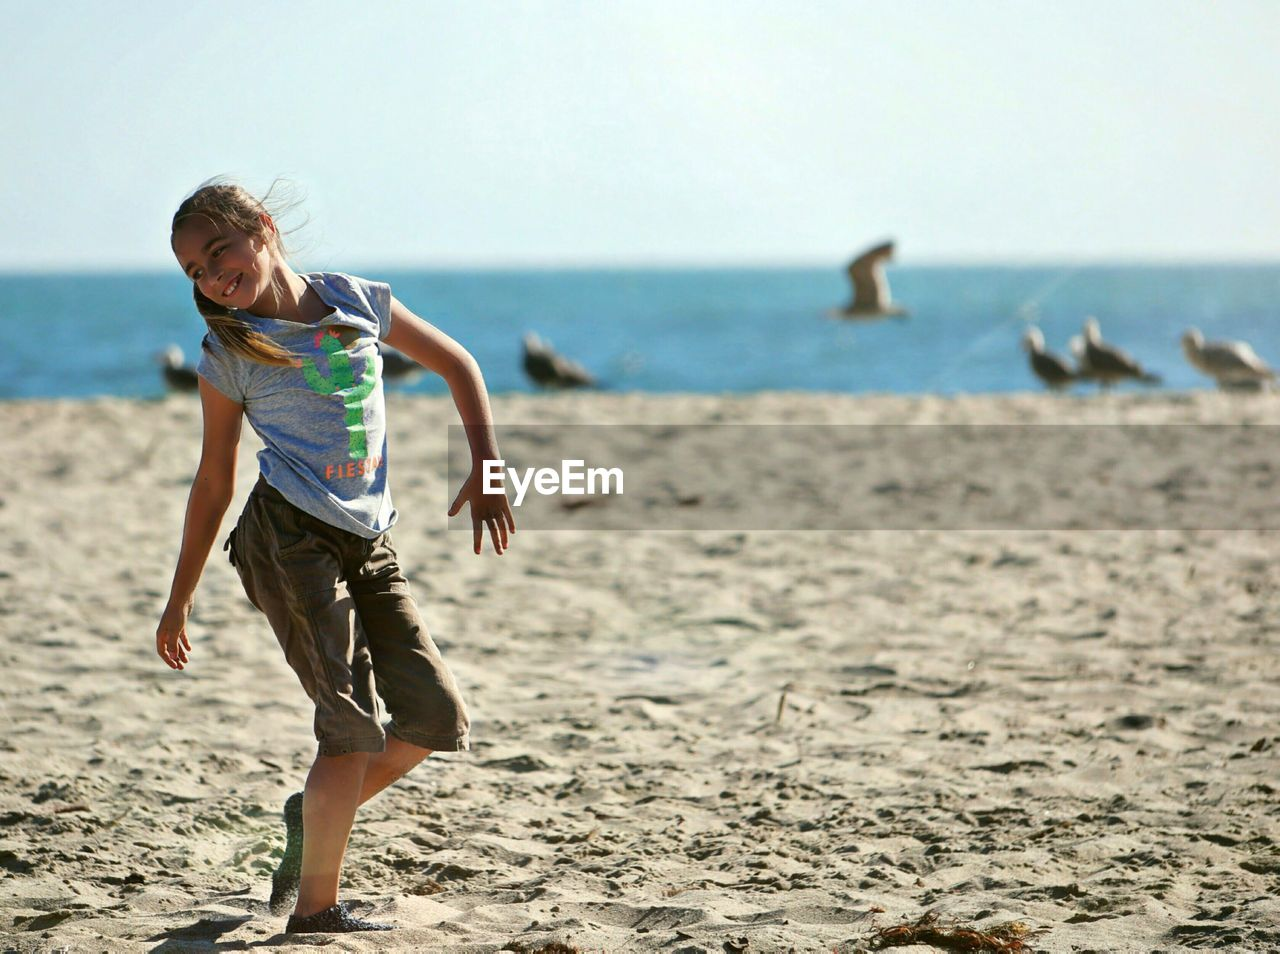 Happy Girl Dancing On Sand At Beach Against Sea During Sunny Day